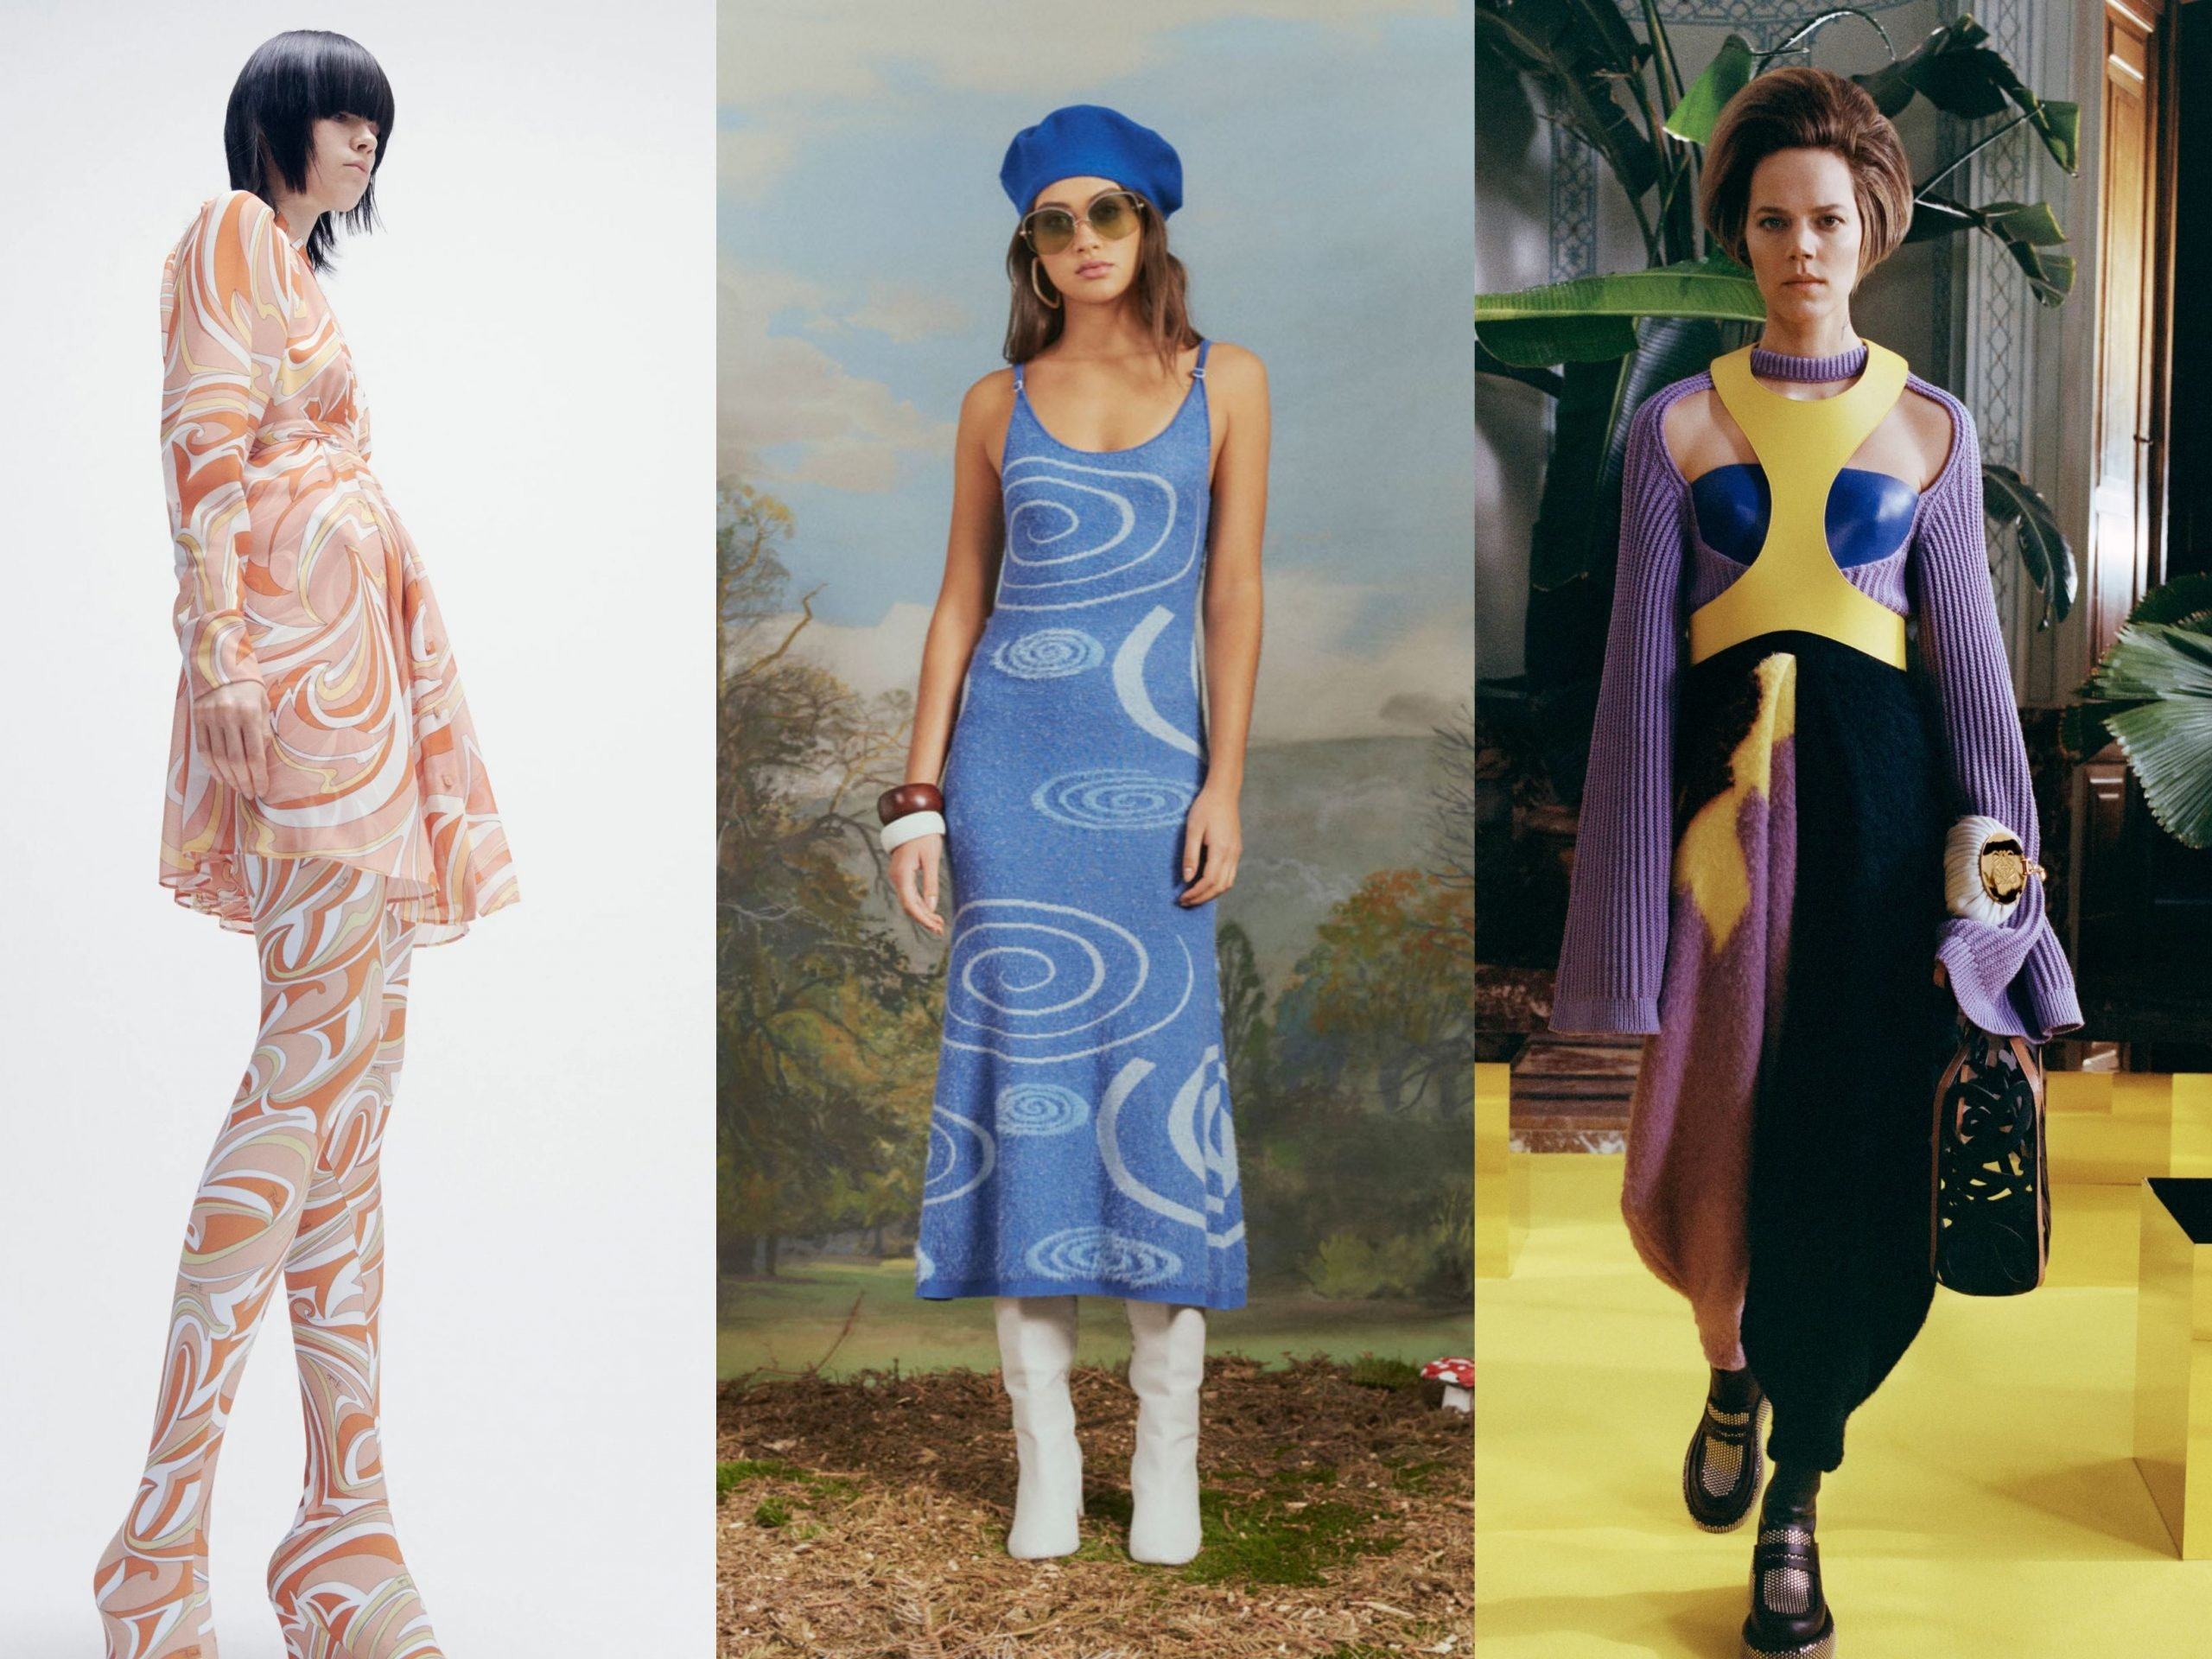 Models wearing AW21 trends abstract prints and sculpture